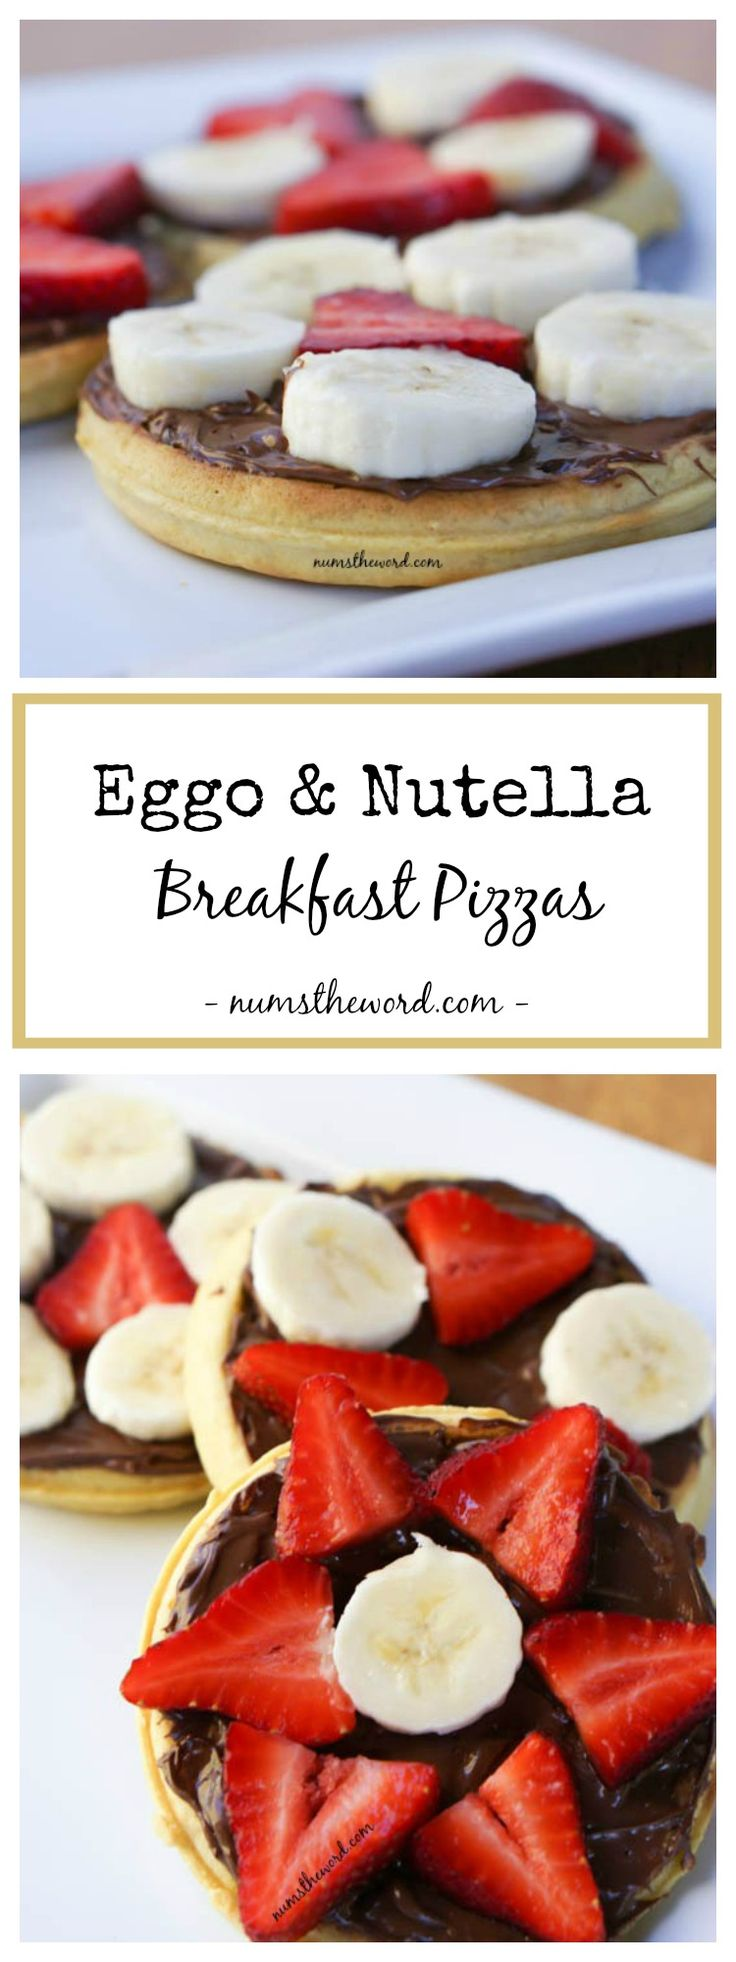 Eggo & Nutella Breakfast Pizzas are a quick 5 minute breakfast packed with flavor and able to hold you over.  Perfect for in the car to the office or school.  Morning breakfast never tasted so good!